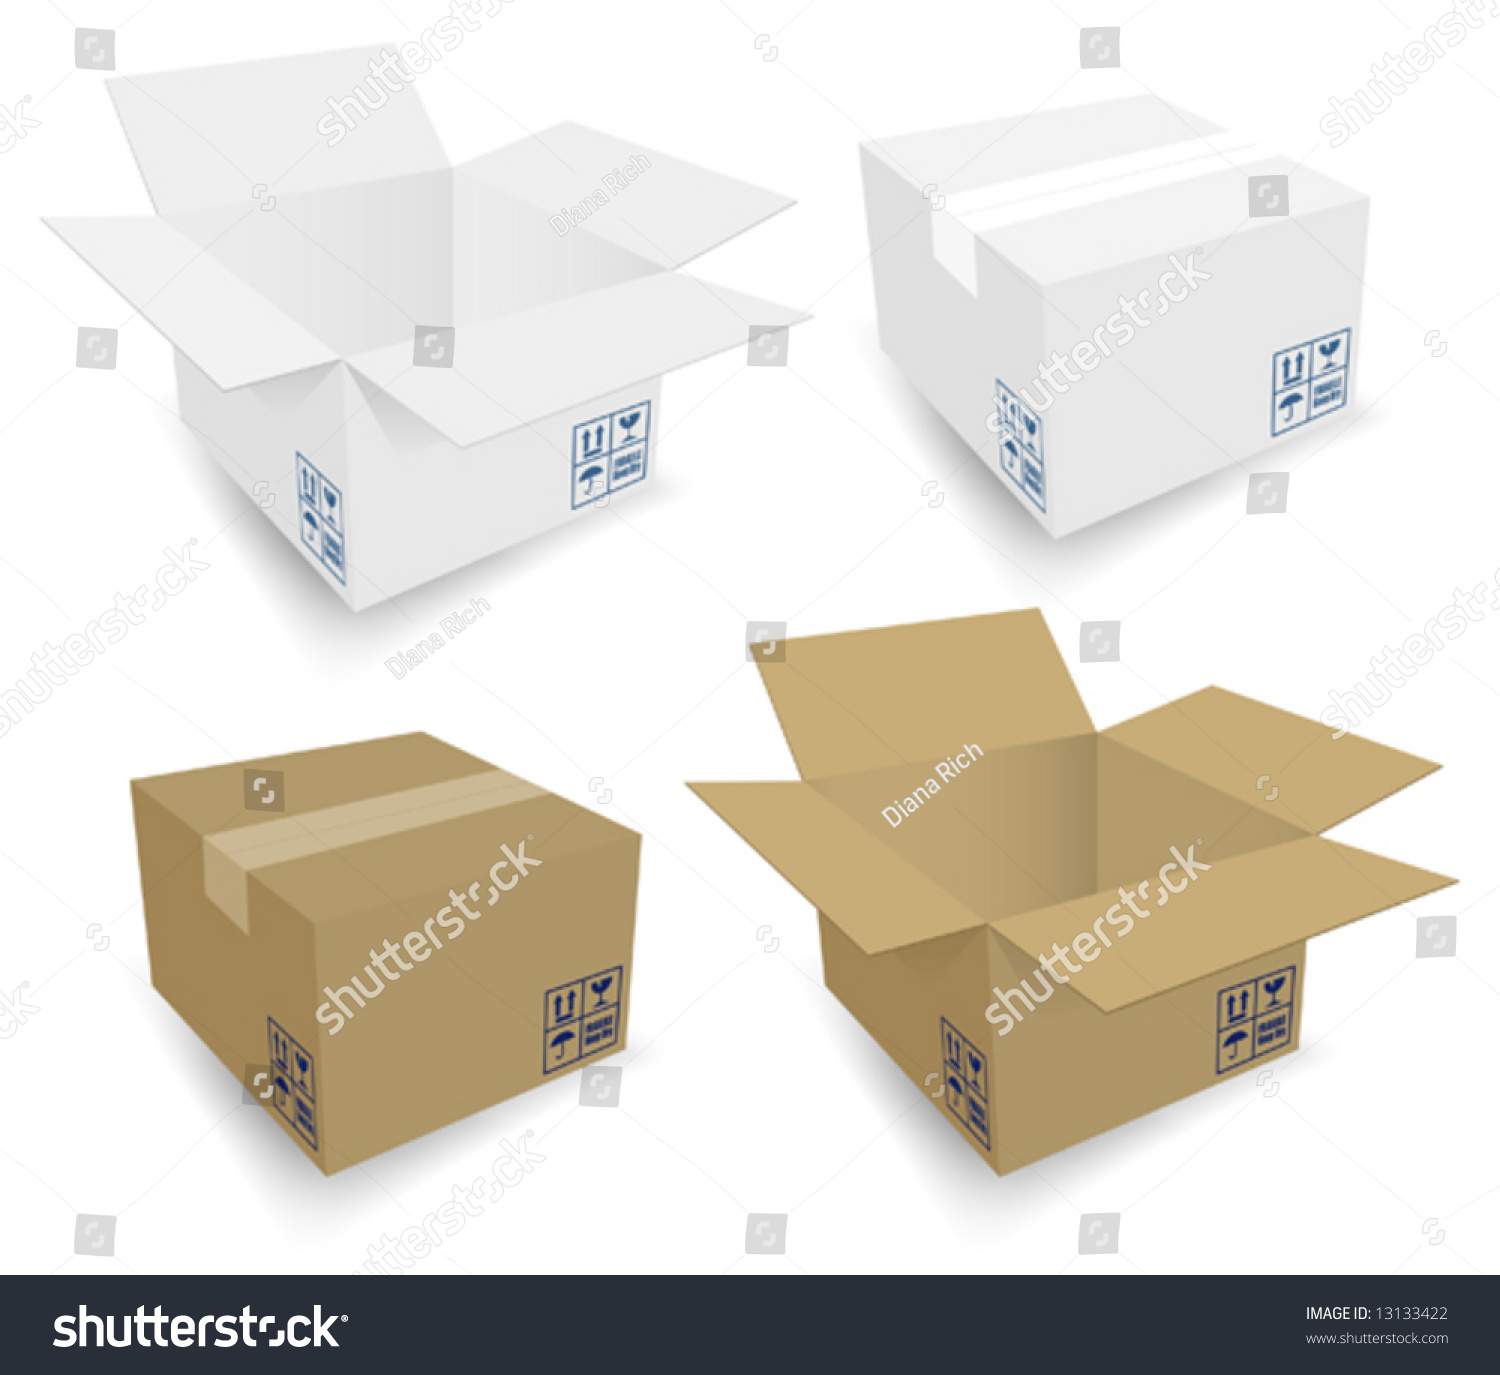 Cardboard Boxes Icons Open & Closed. Same Box, White And